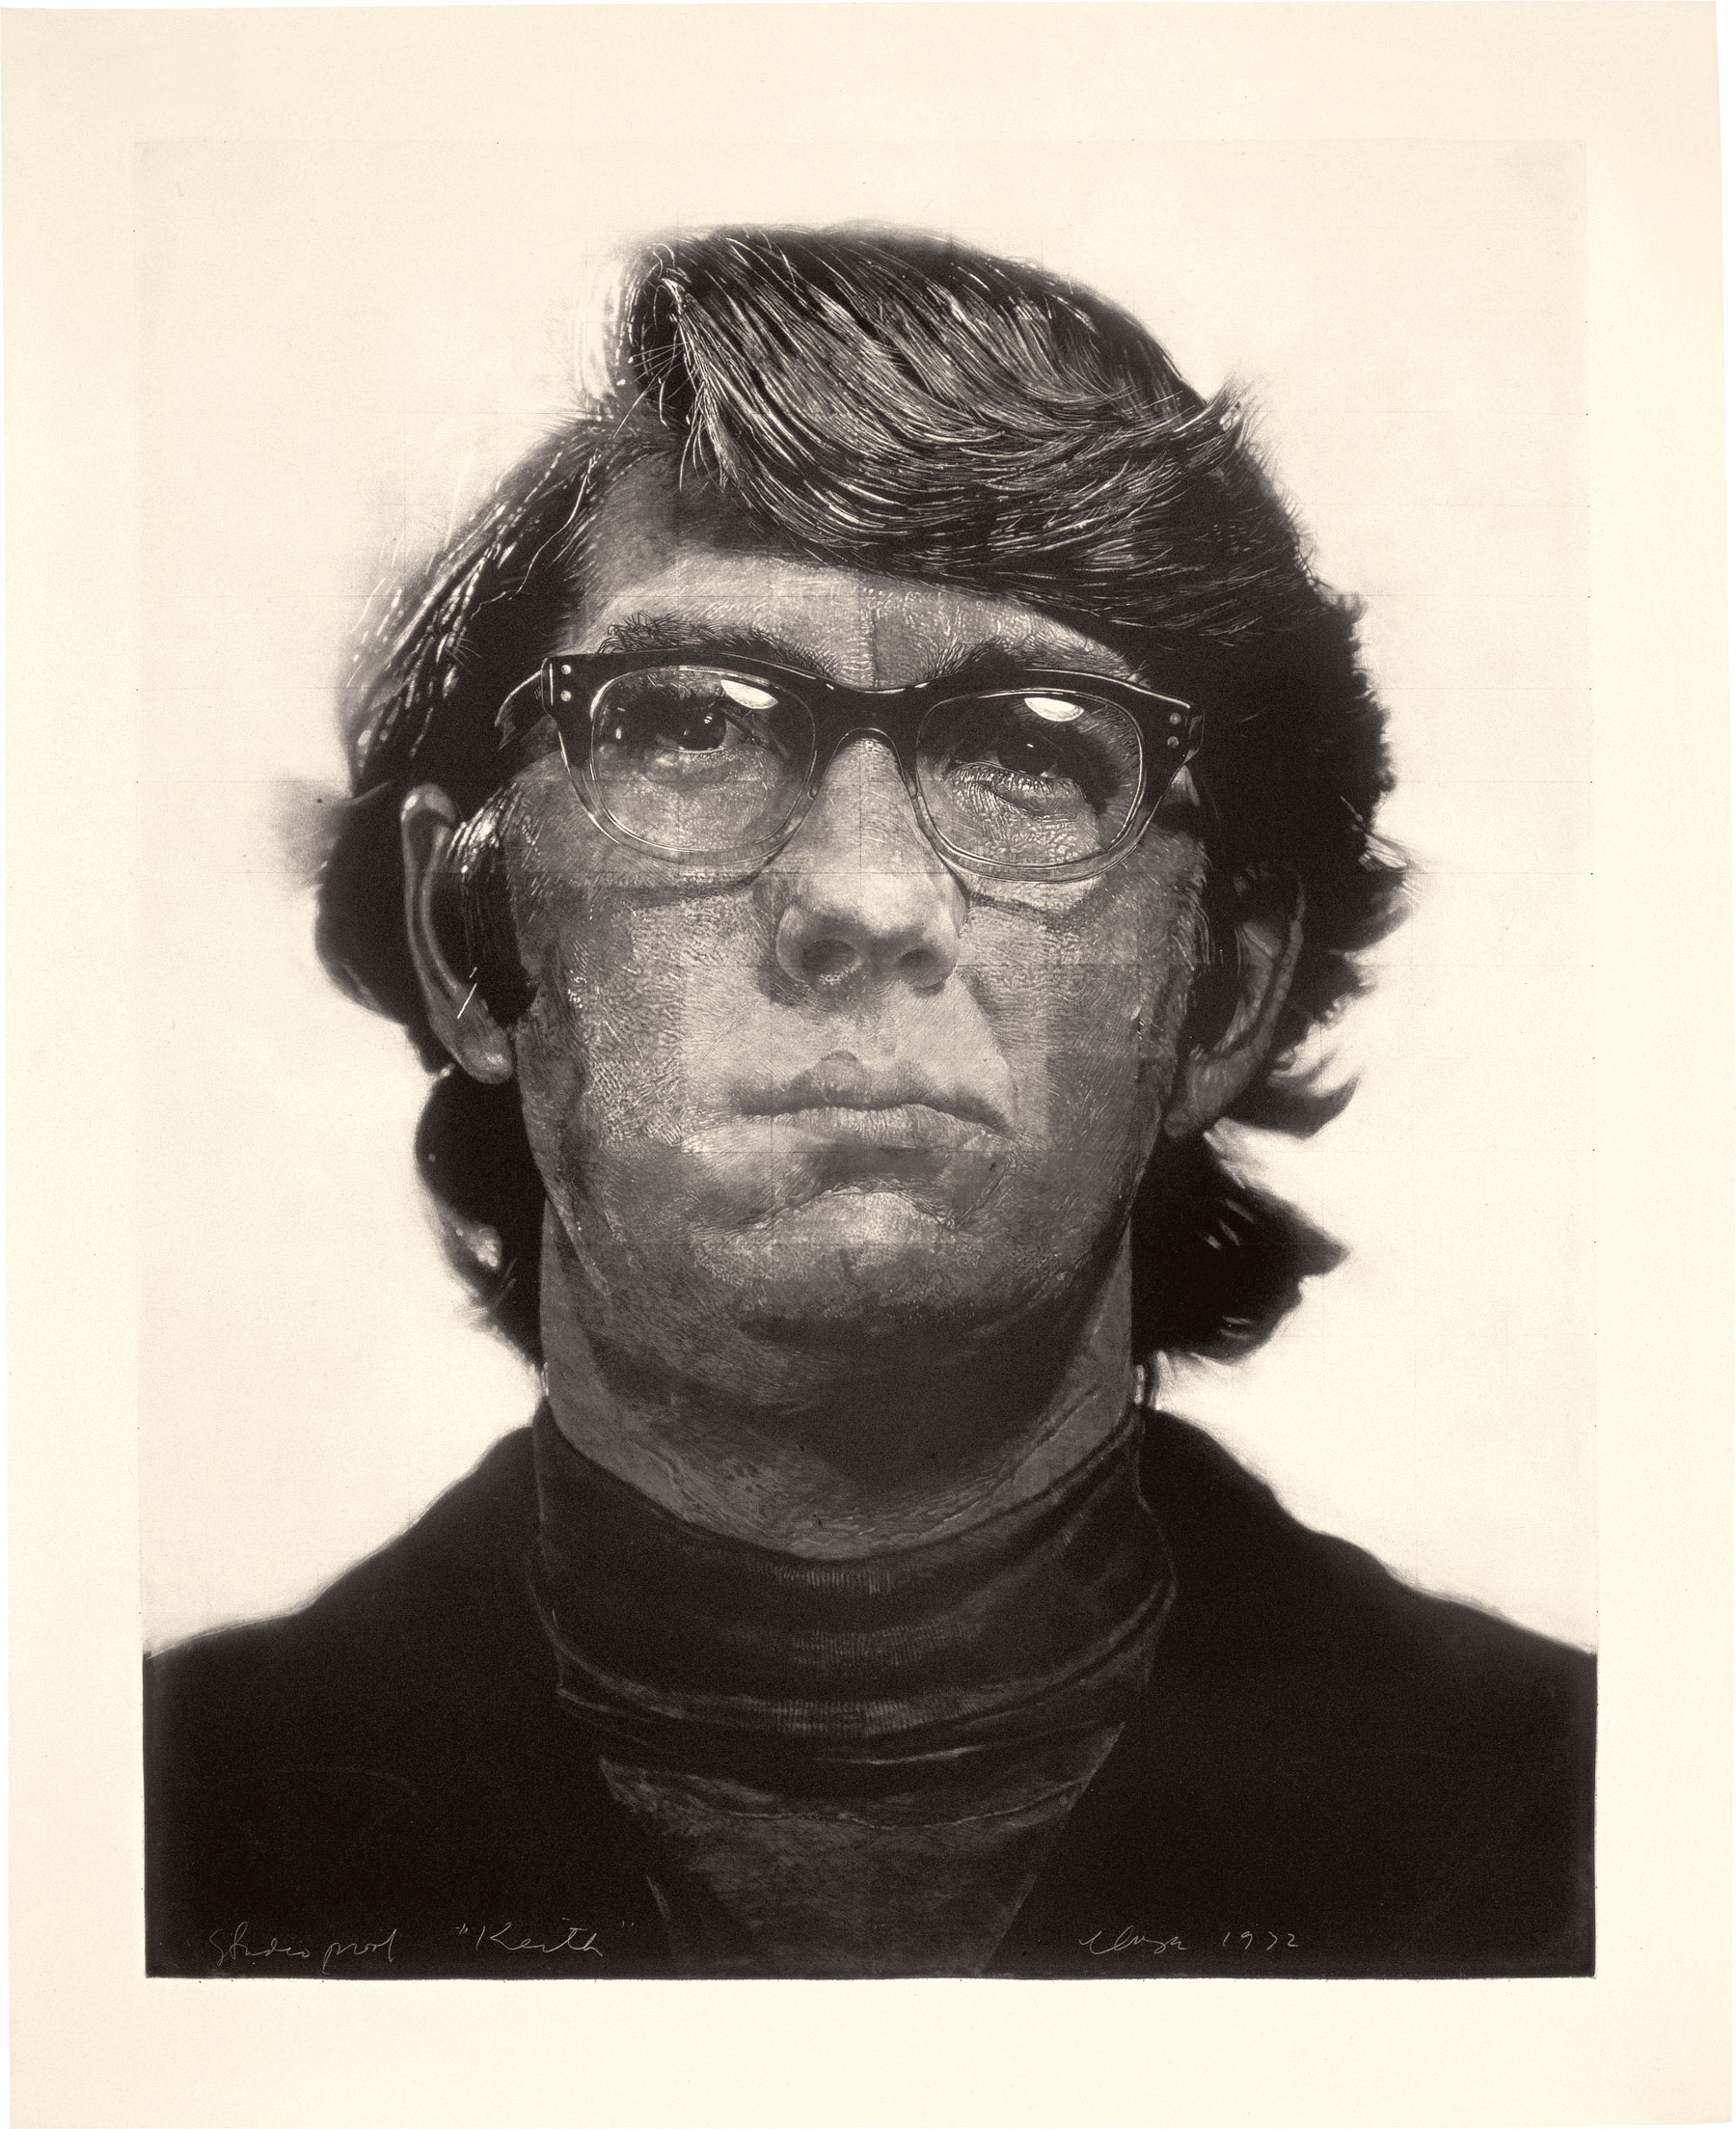 Keith/Mezzotint, 1972 (Photo by Maggie L. Kundtz)